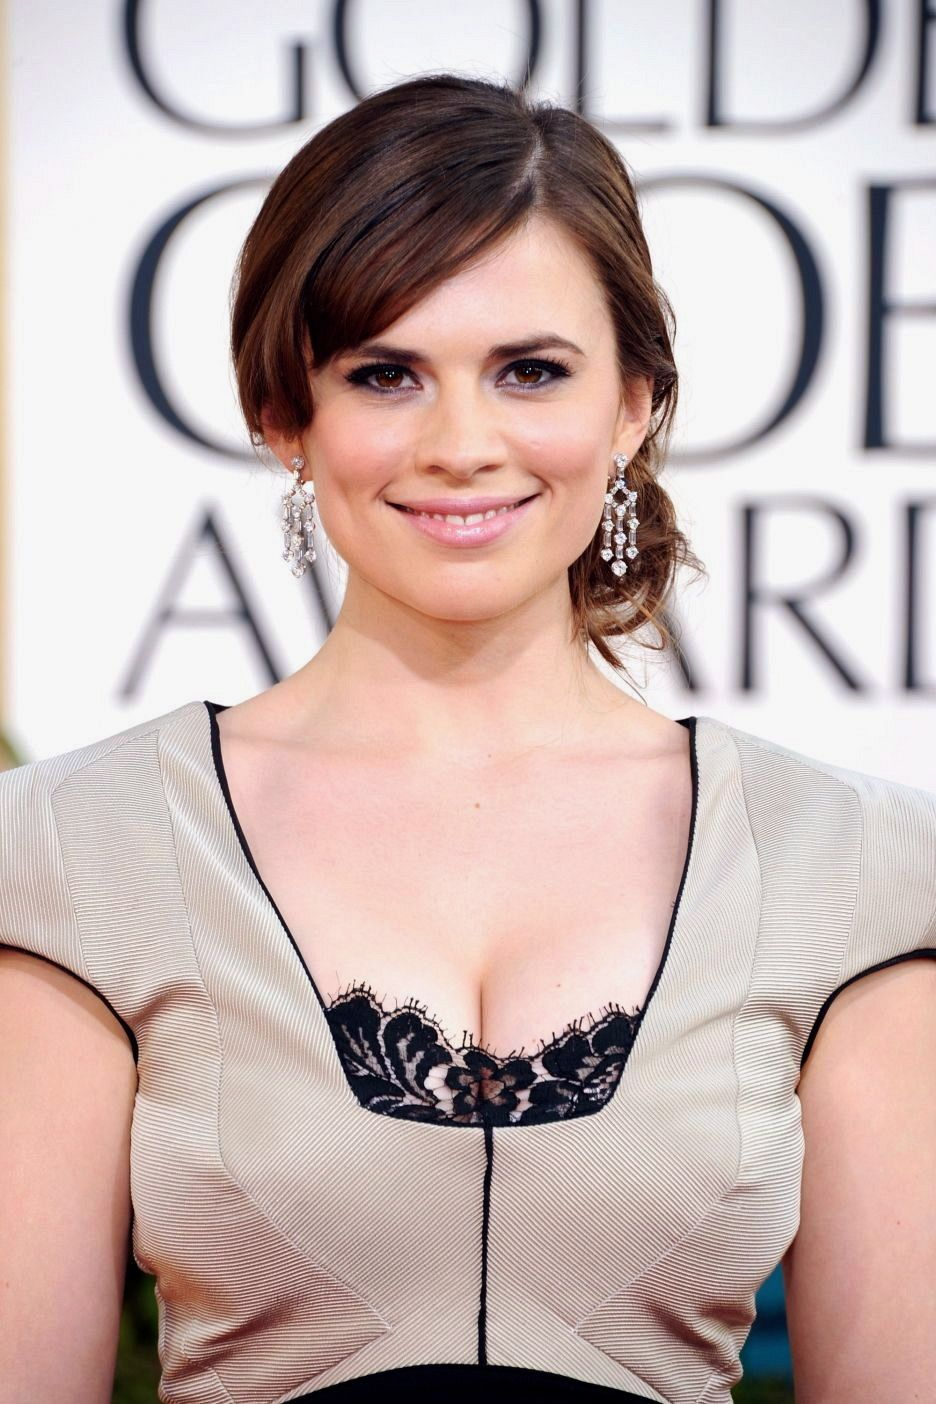 Beautiful Smile From Hayley Atwell Krams In 2018 Pinterest